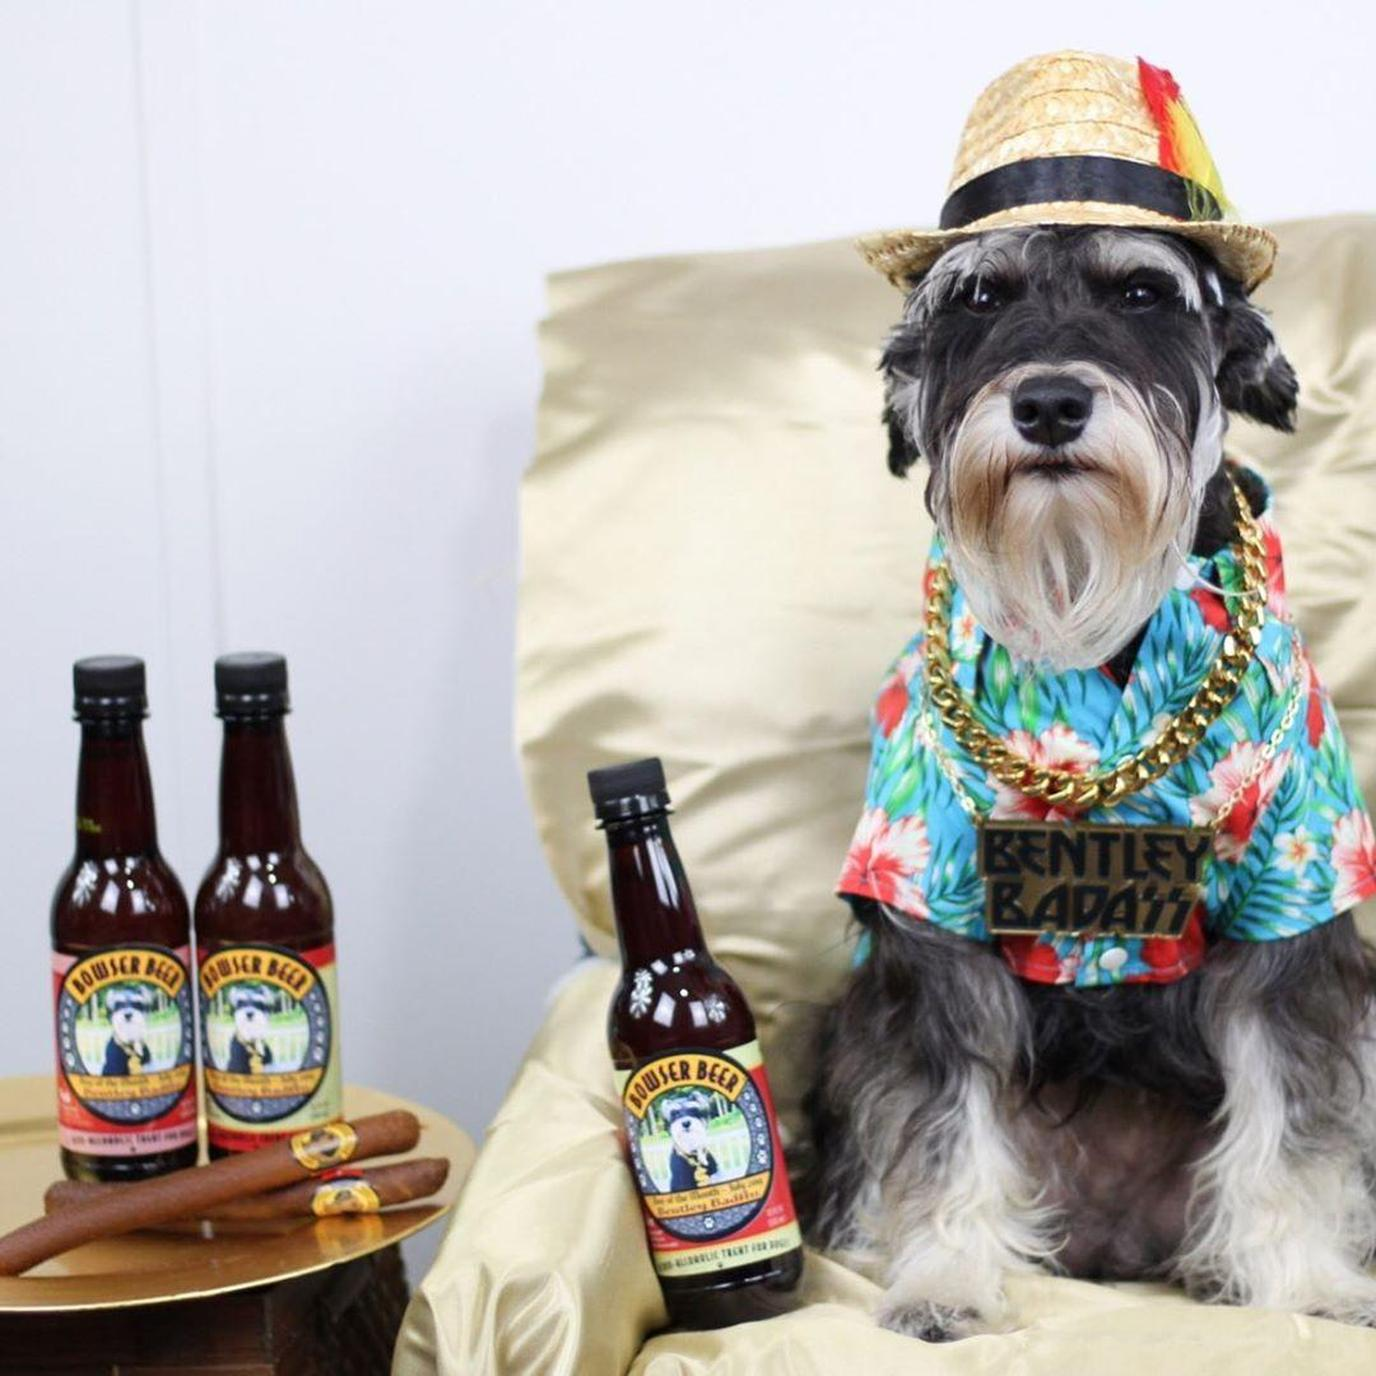 Get your dog a dog beer to celebrate National Dog Day.